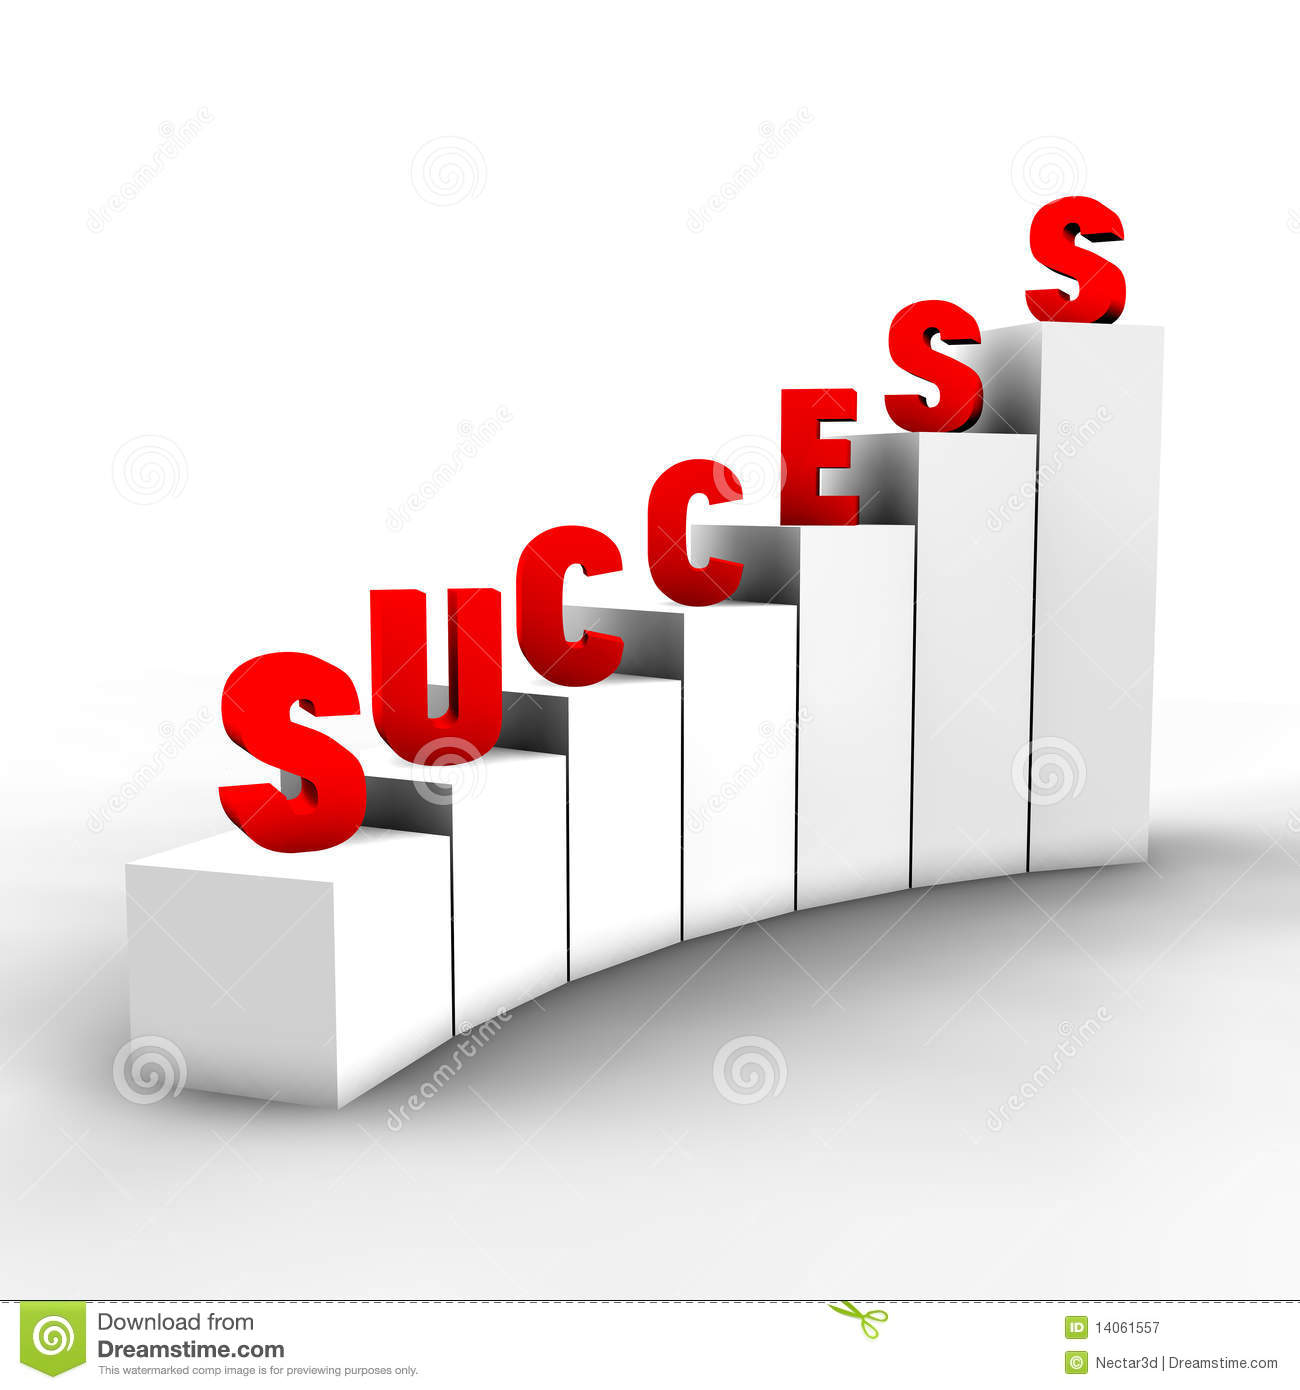 steps to success clipart 2 clipart station clipart stars clipart stars in the sky